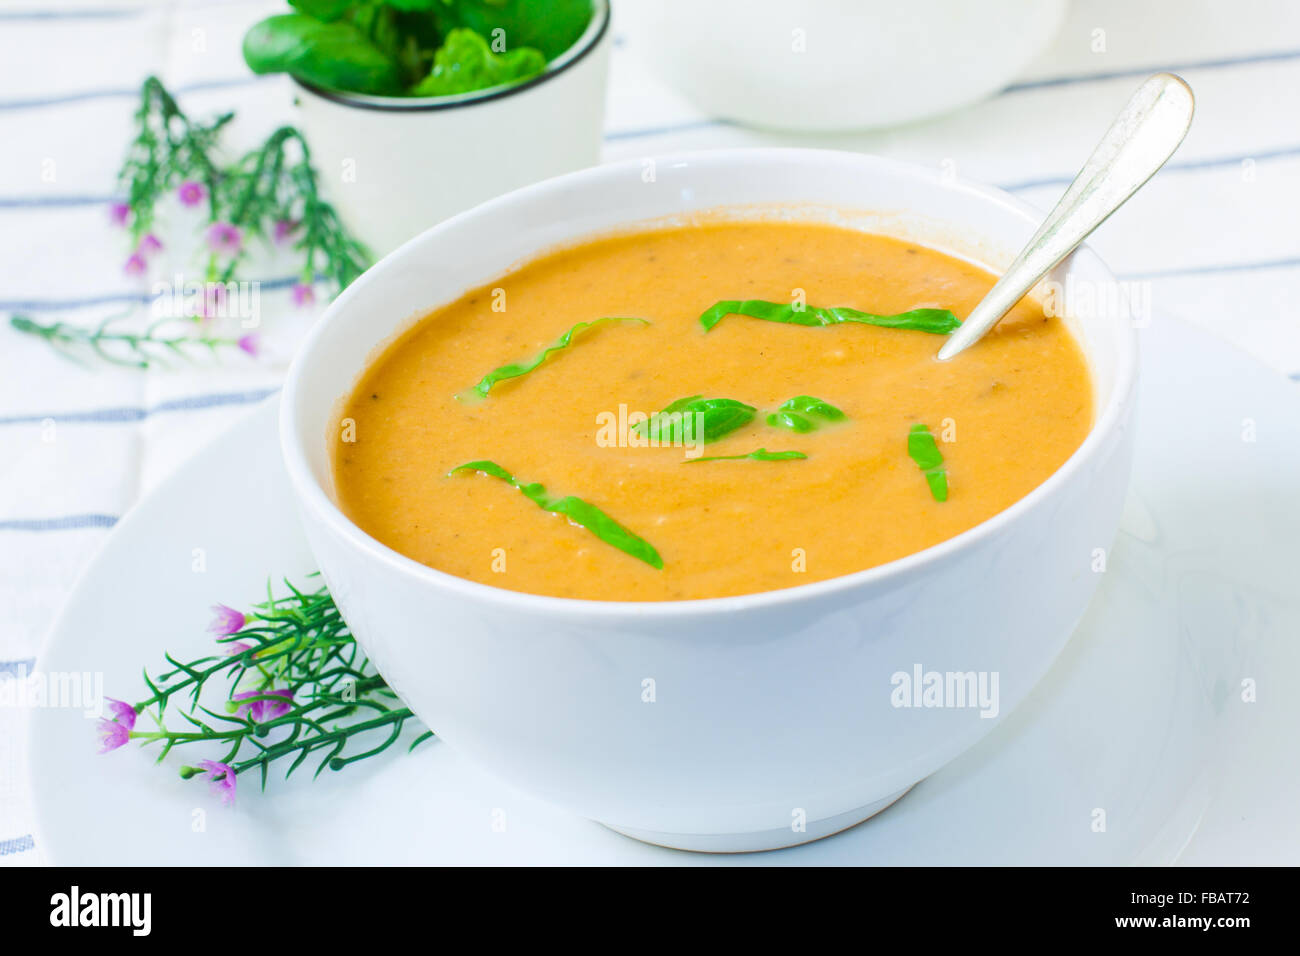 ceramic bowl with vegetables cream and basil - Stock Image